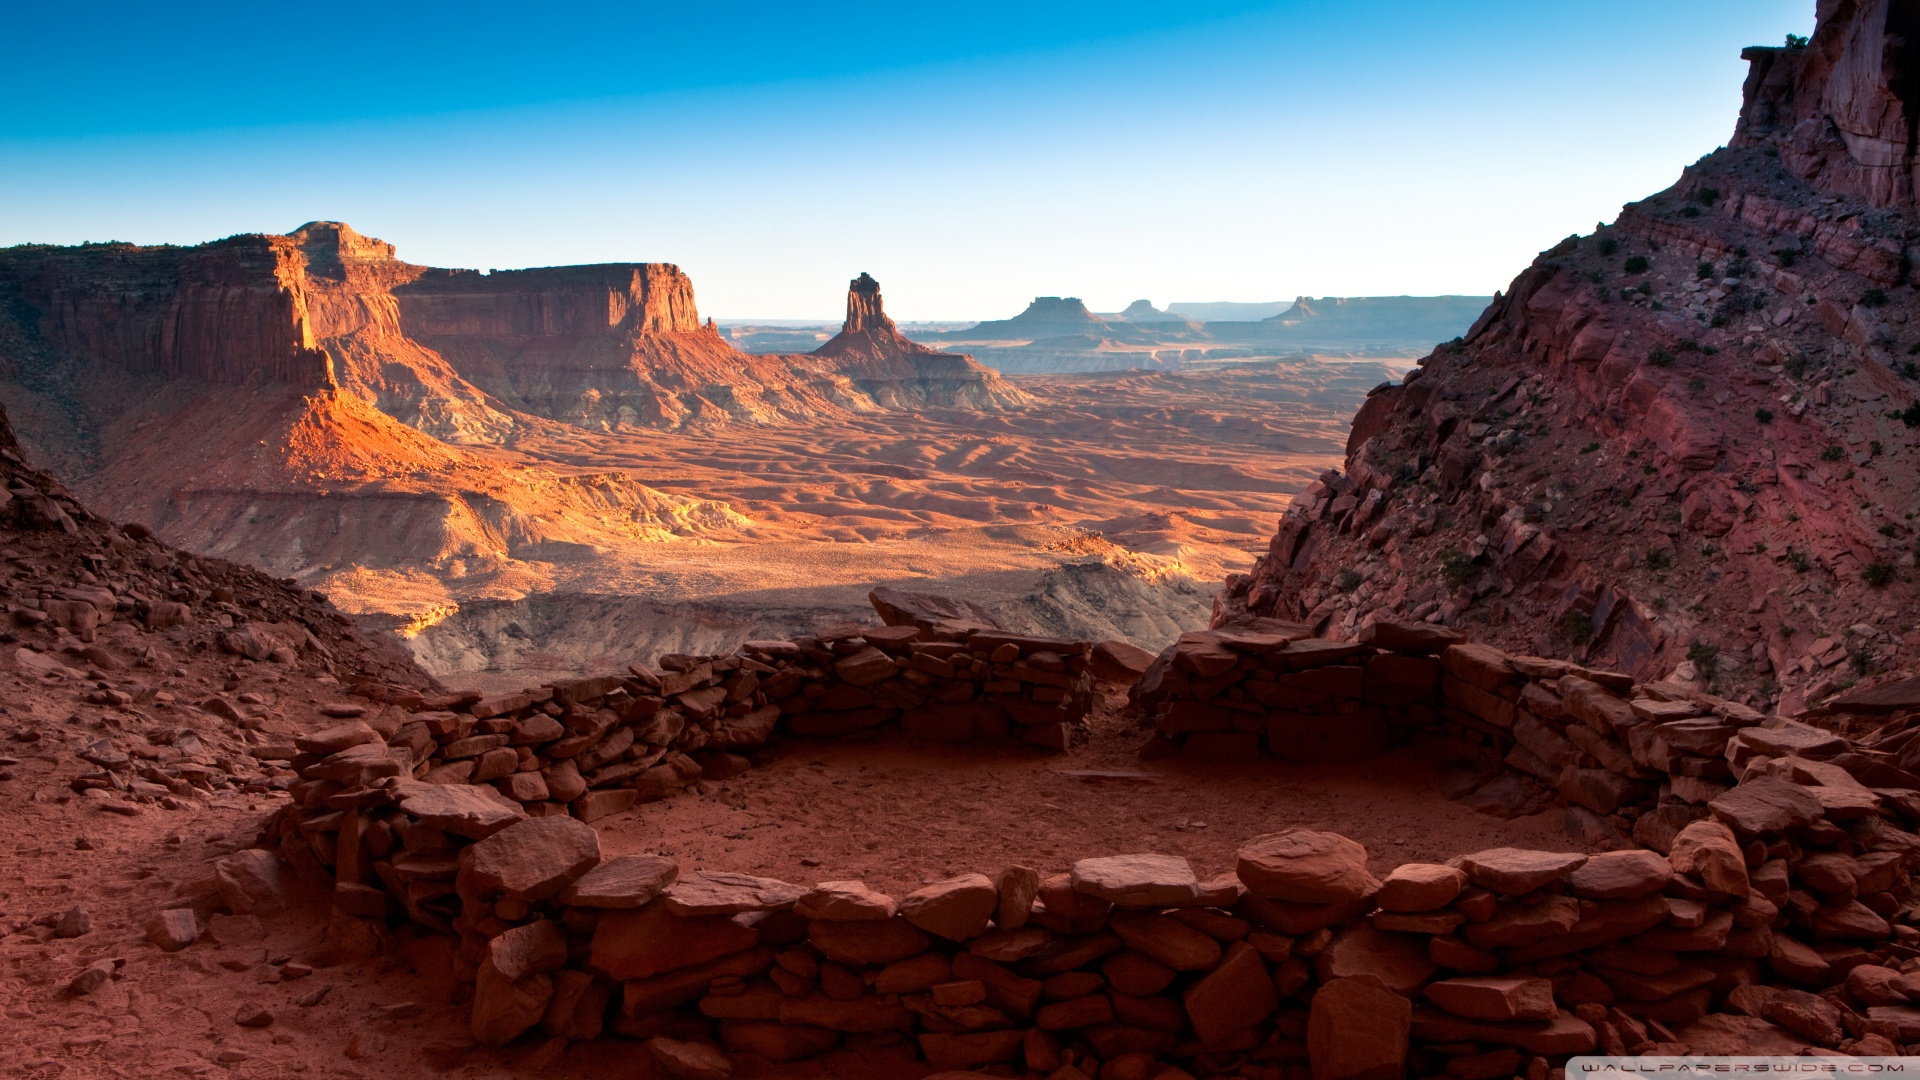 Circle In Canyonlands National Park In Utah United States wallpaper 1920x1080